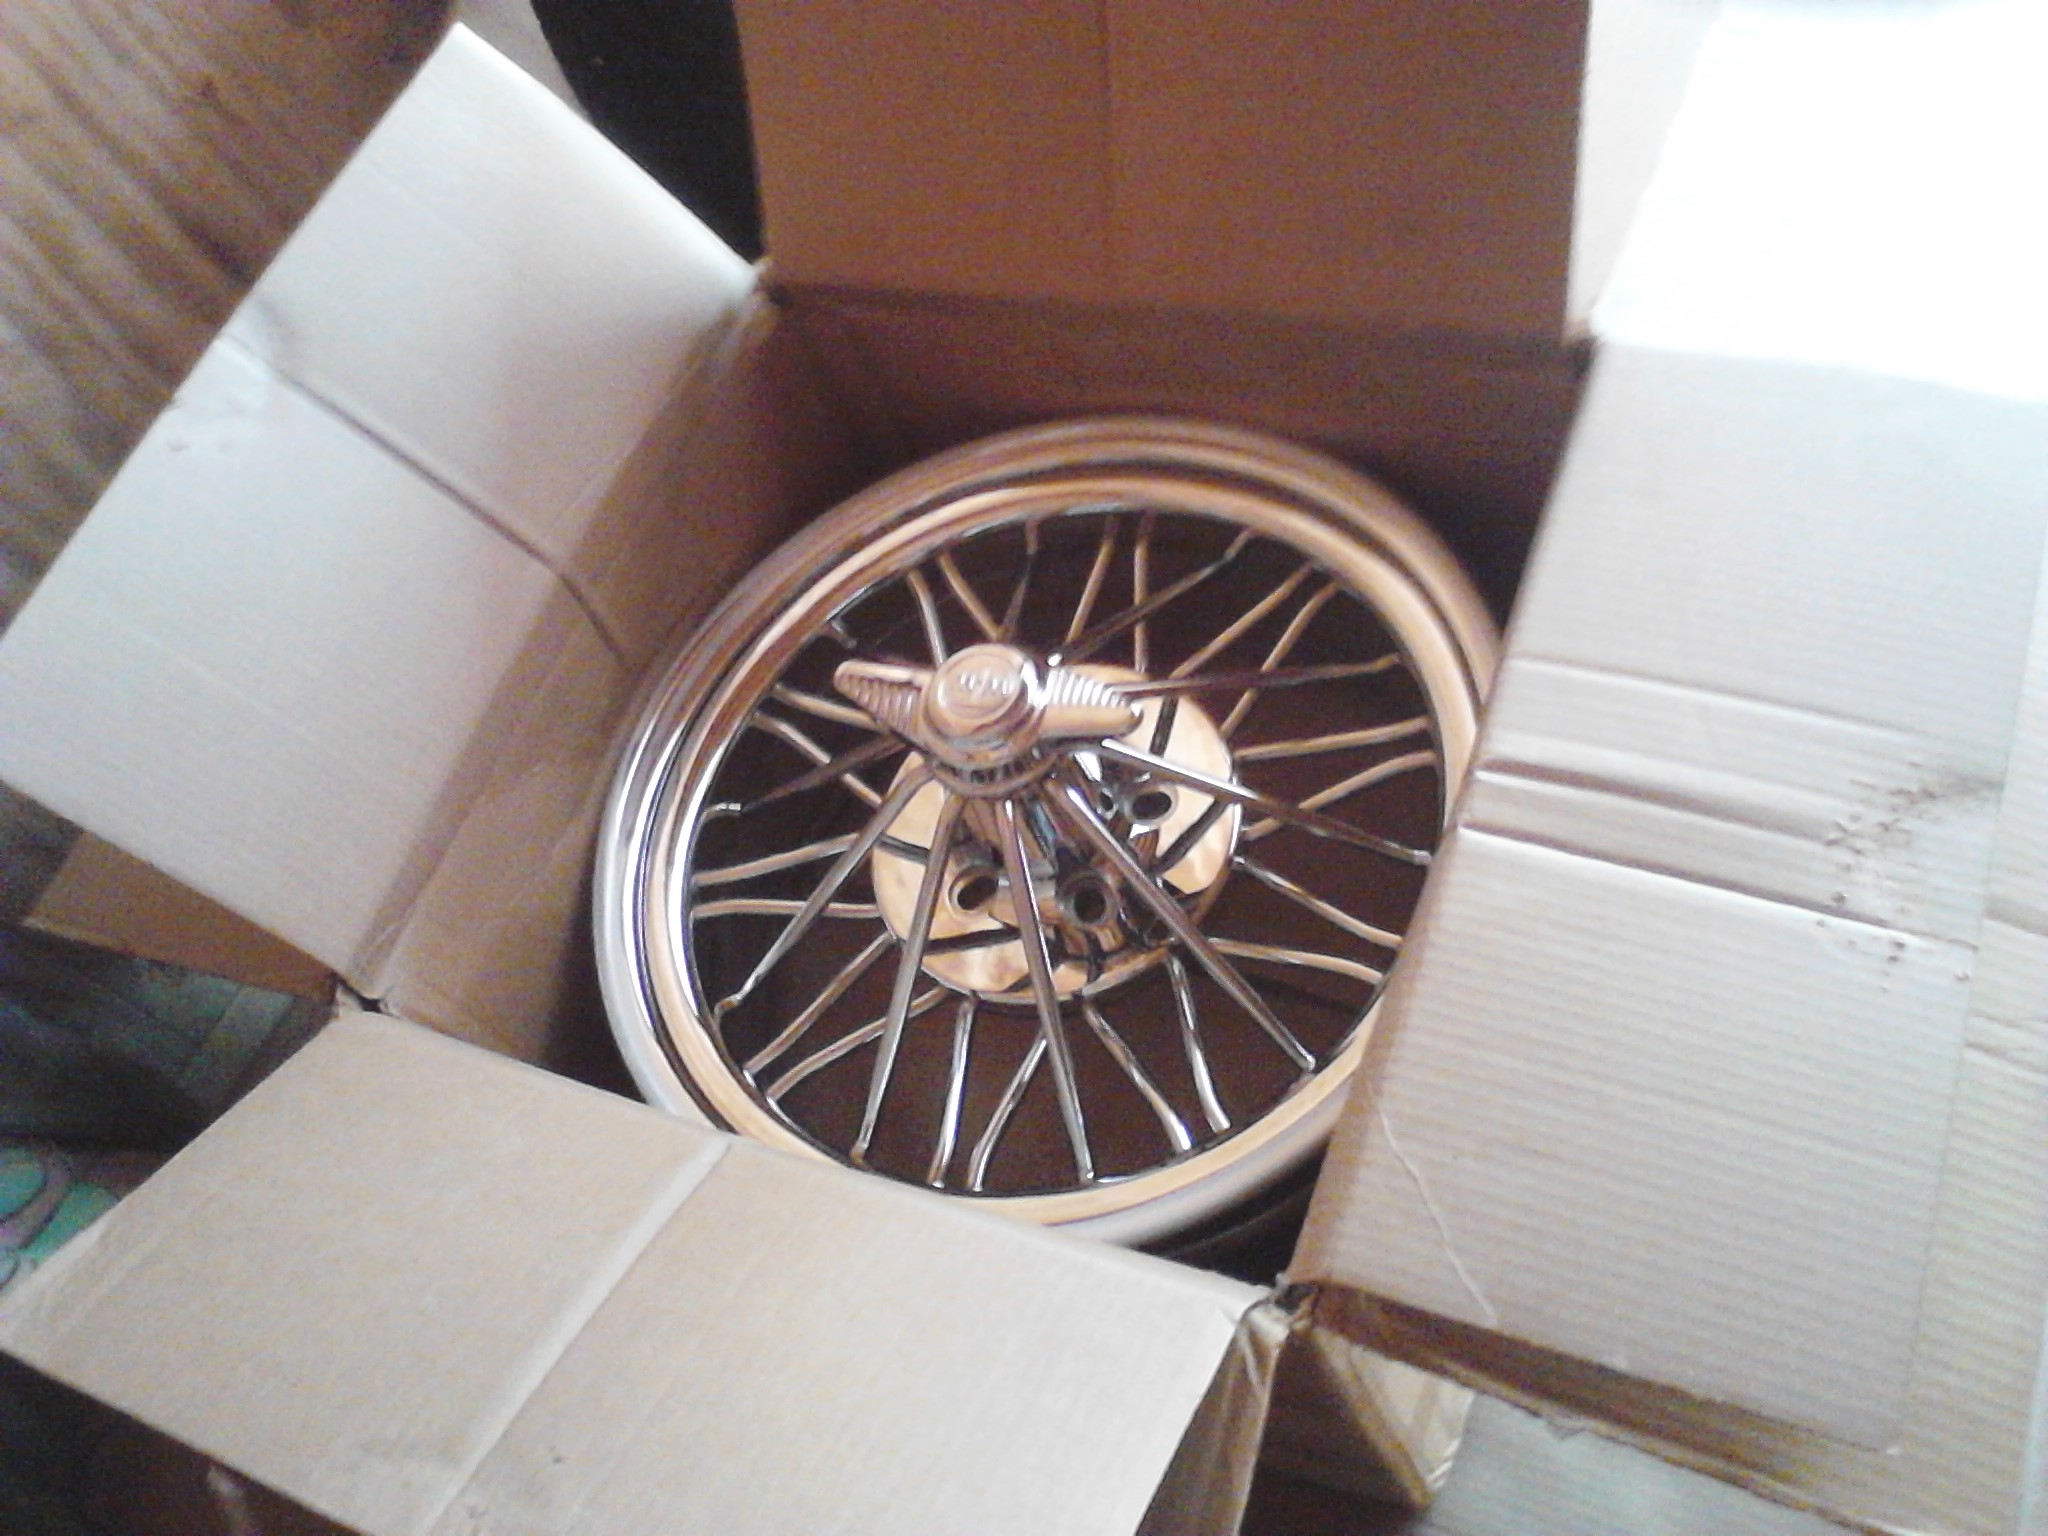 83s and vogues next - 19065316